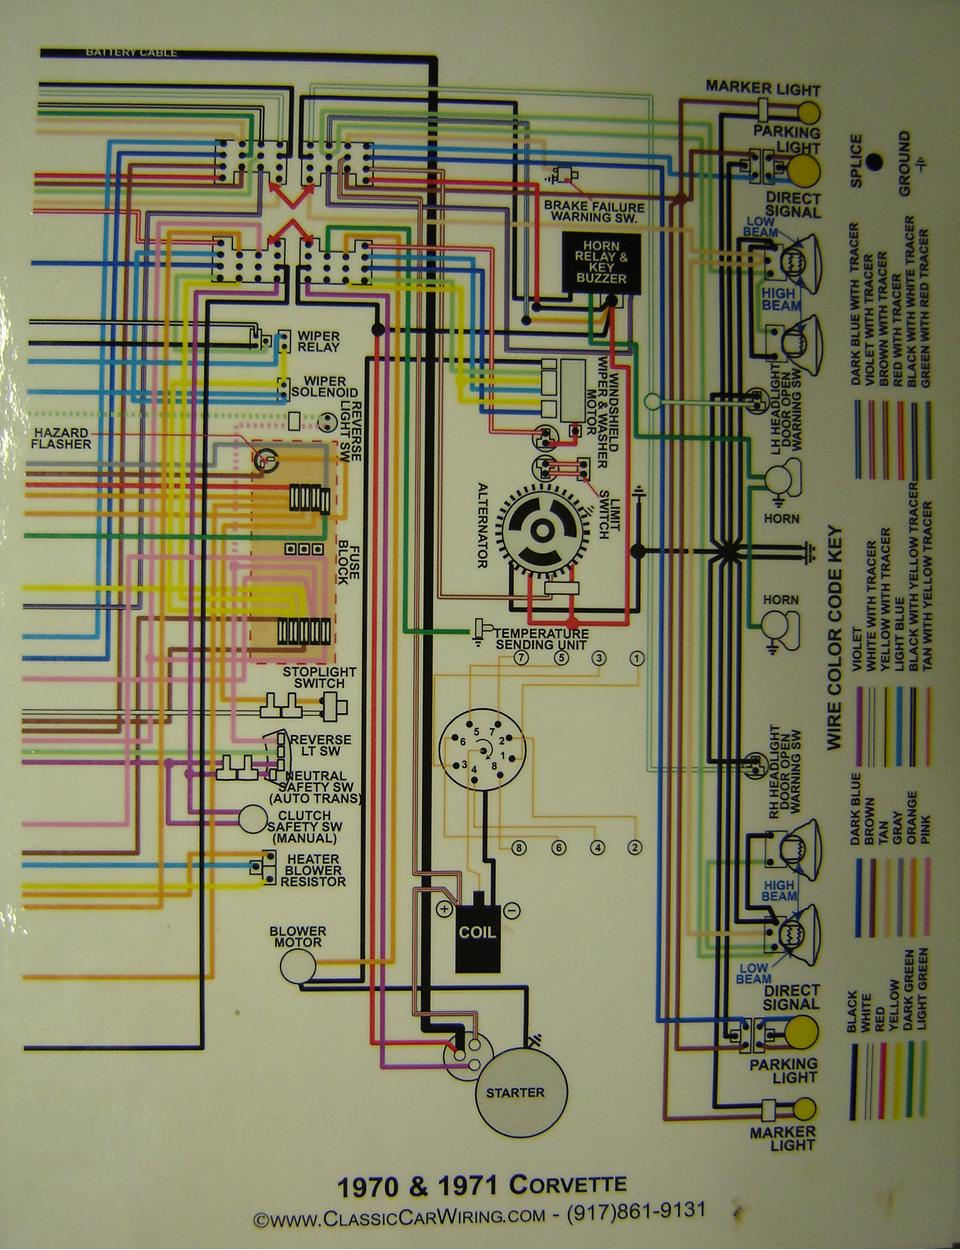 1970 71 corvette color wiring diagram B chevy diagrams corvette wiring schematic at soozxer.org